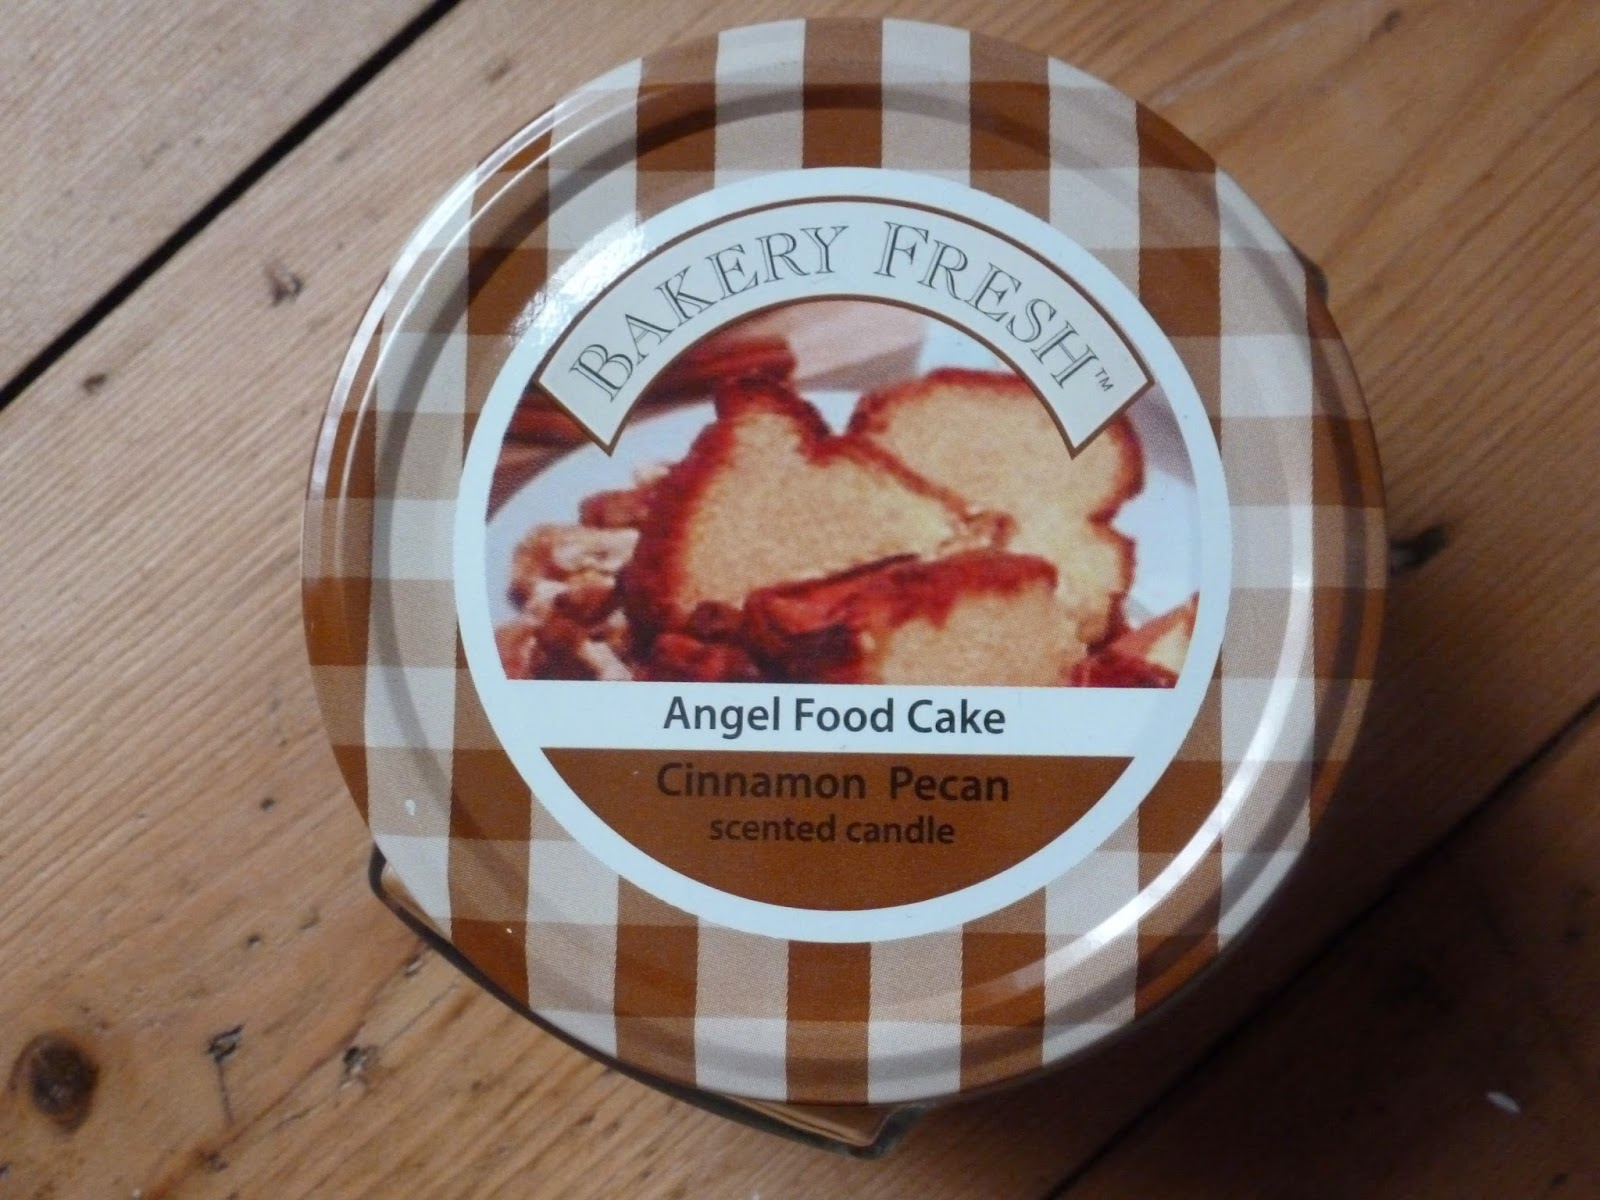 bakery fresh angel food cake cinnamon pecan scented candle